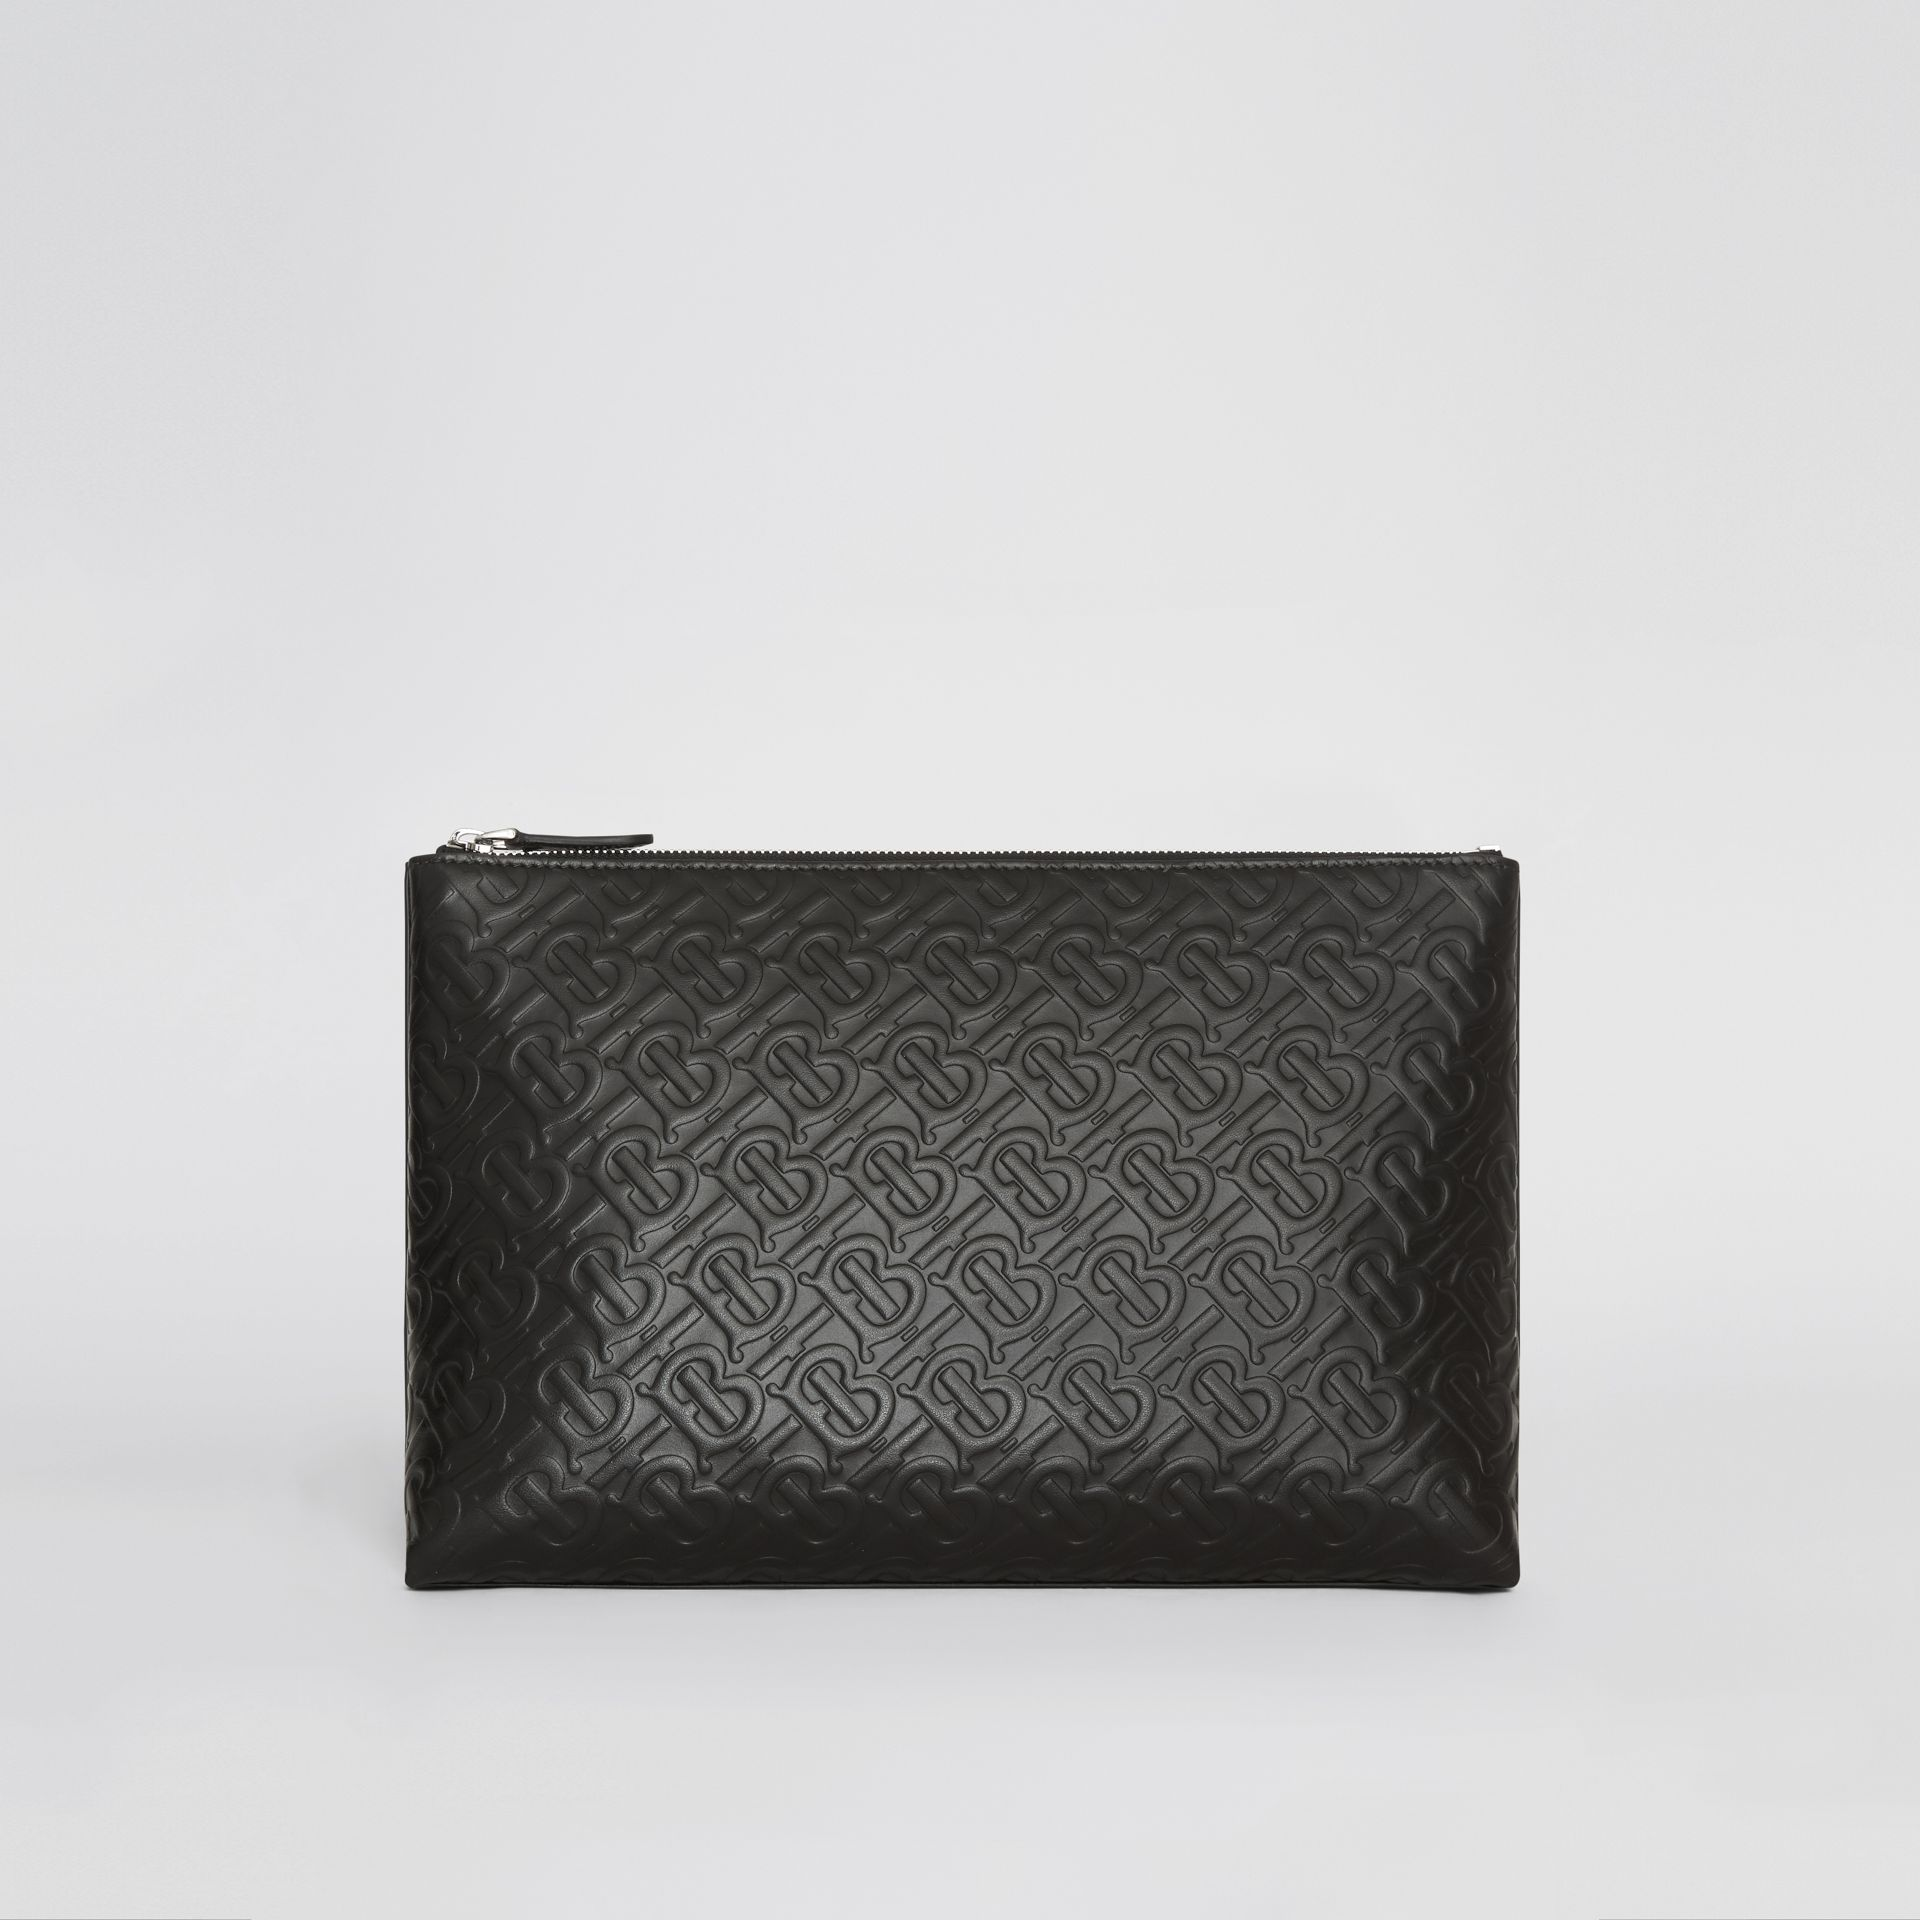 Monogram Leather Zip Pouch in Black - Men | Burberry - gallery image 6